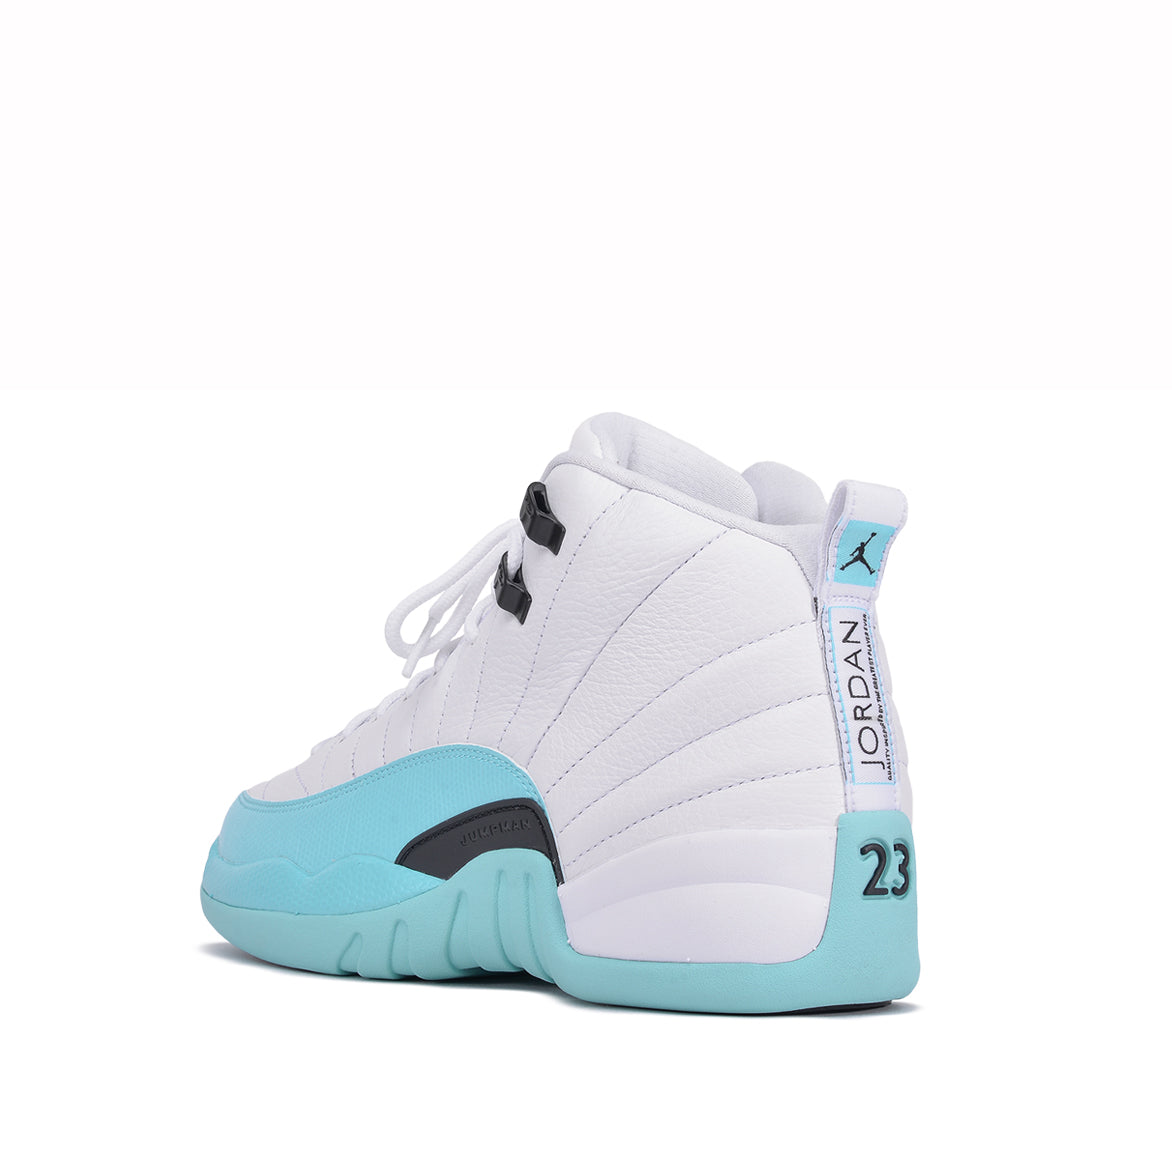 separation shoes bc68b 57865 AIR JORDAN RETRO 12 (GG)